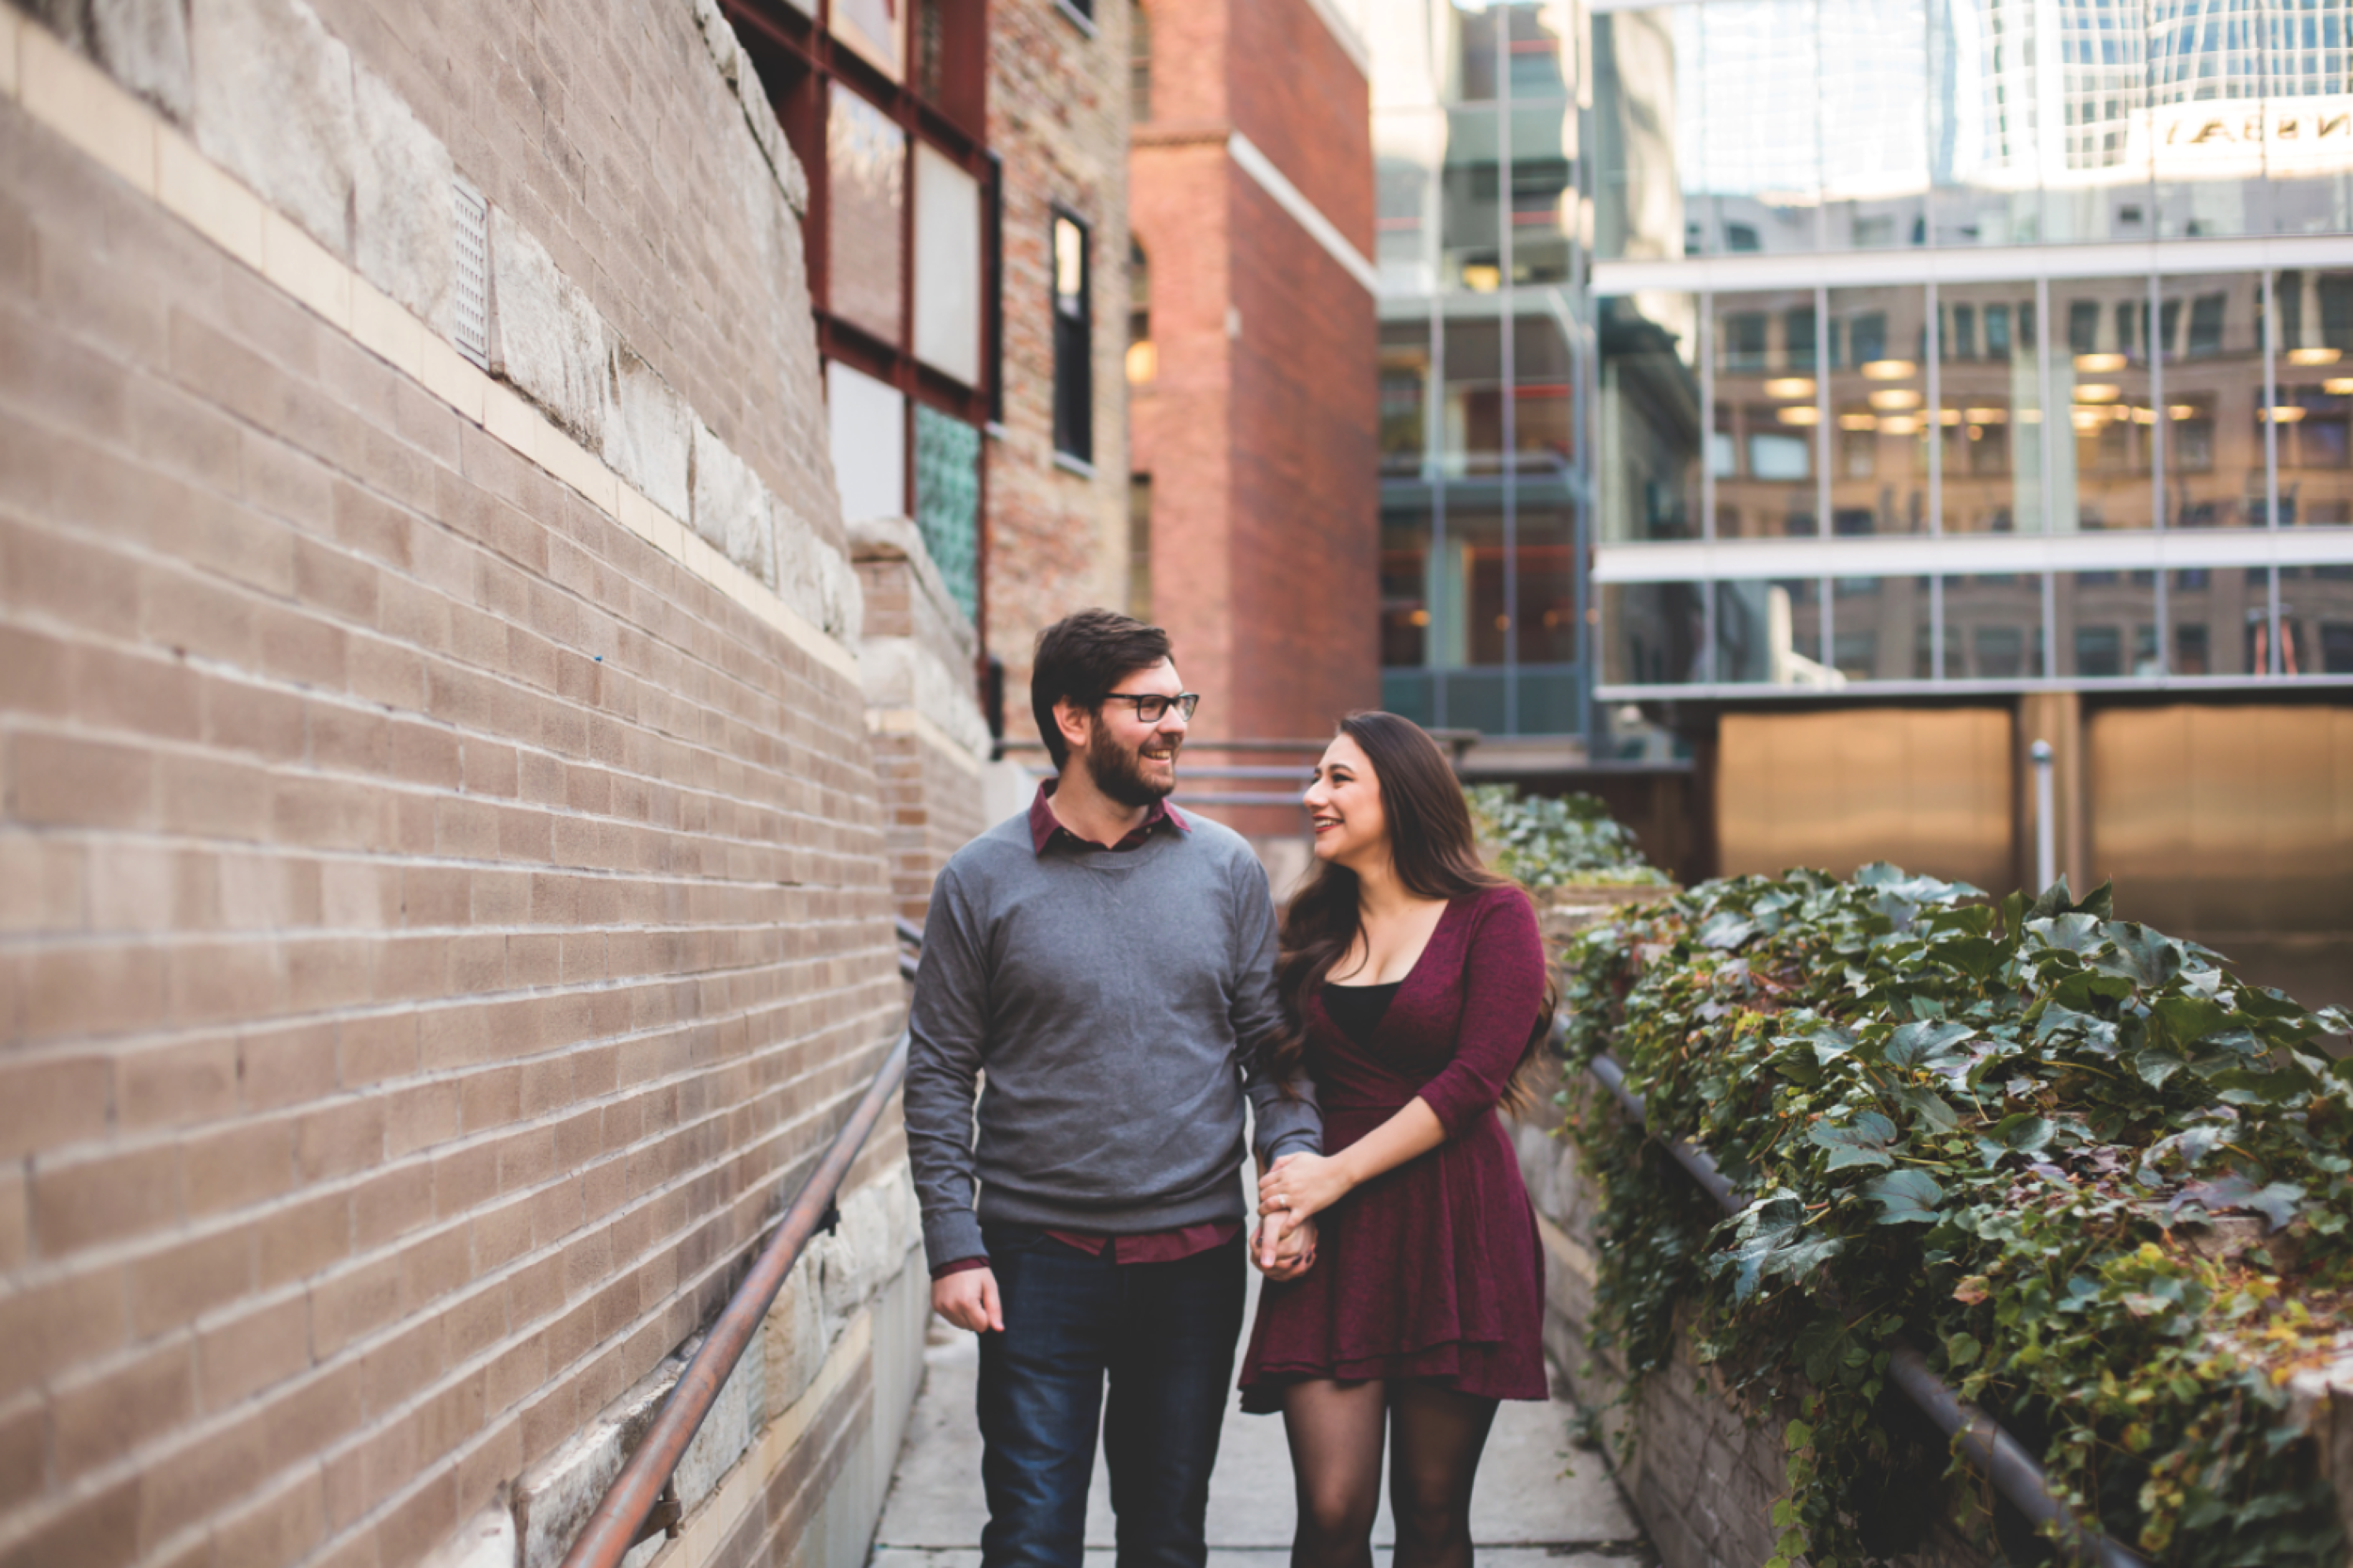 Engagement-Session-Hamilton-Burlington-Oakville-Niagara-Toronto-Wedding-Photographer-Engaged-Photography-Urban-Engaged-Downtown-Golden-Hour-Moments-by-Lauren-Photo-Image-5.png